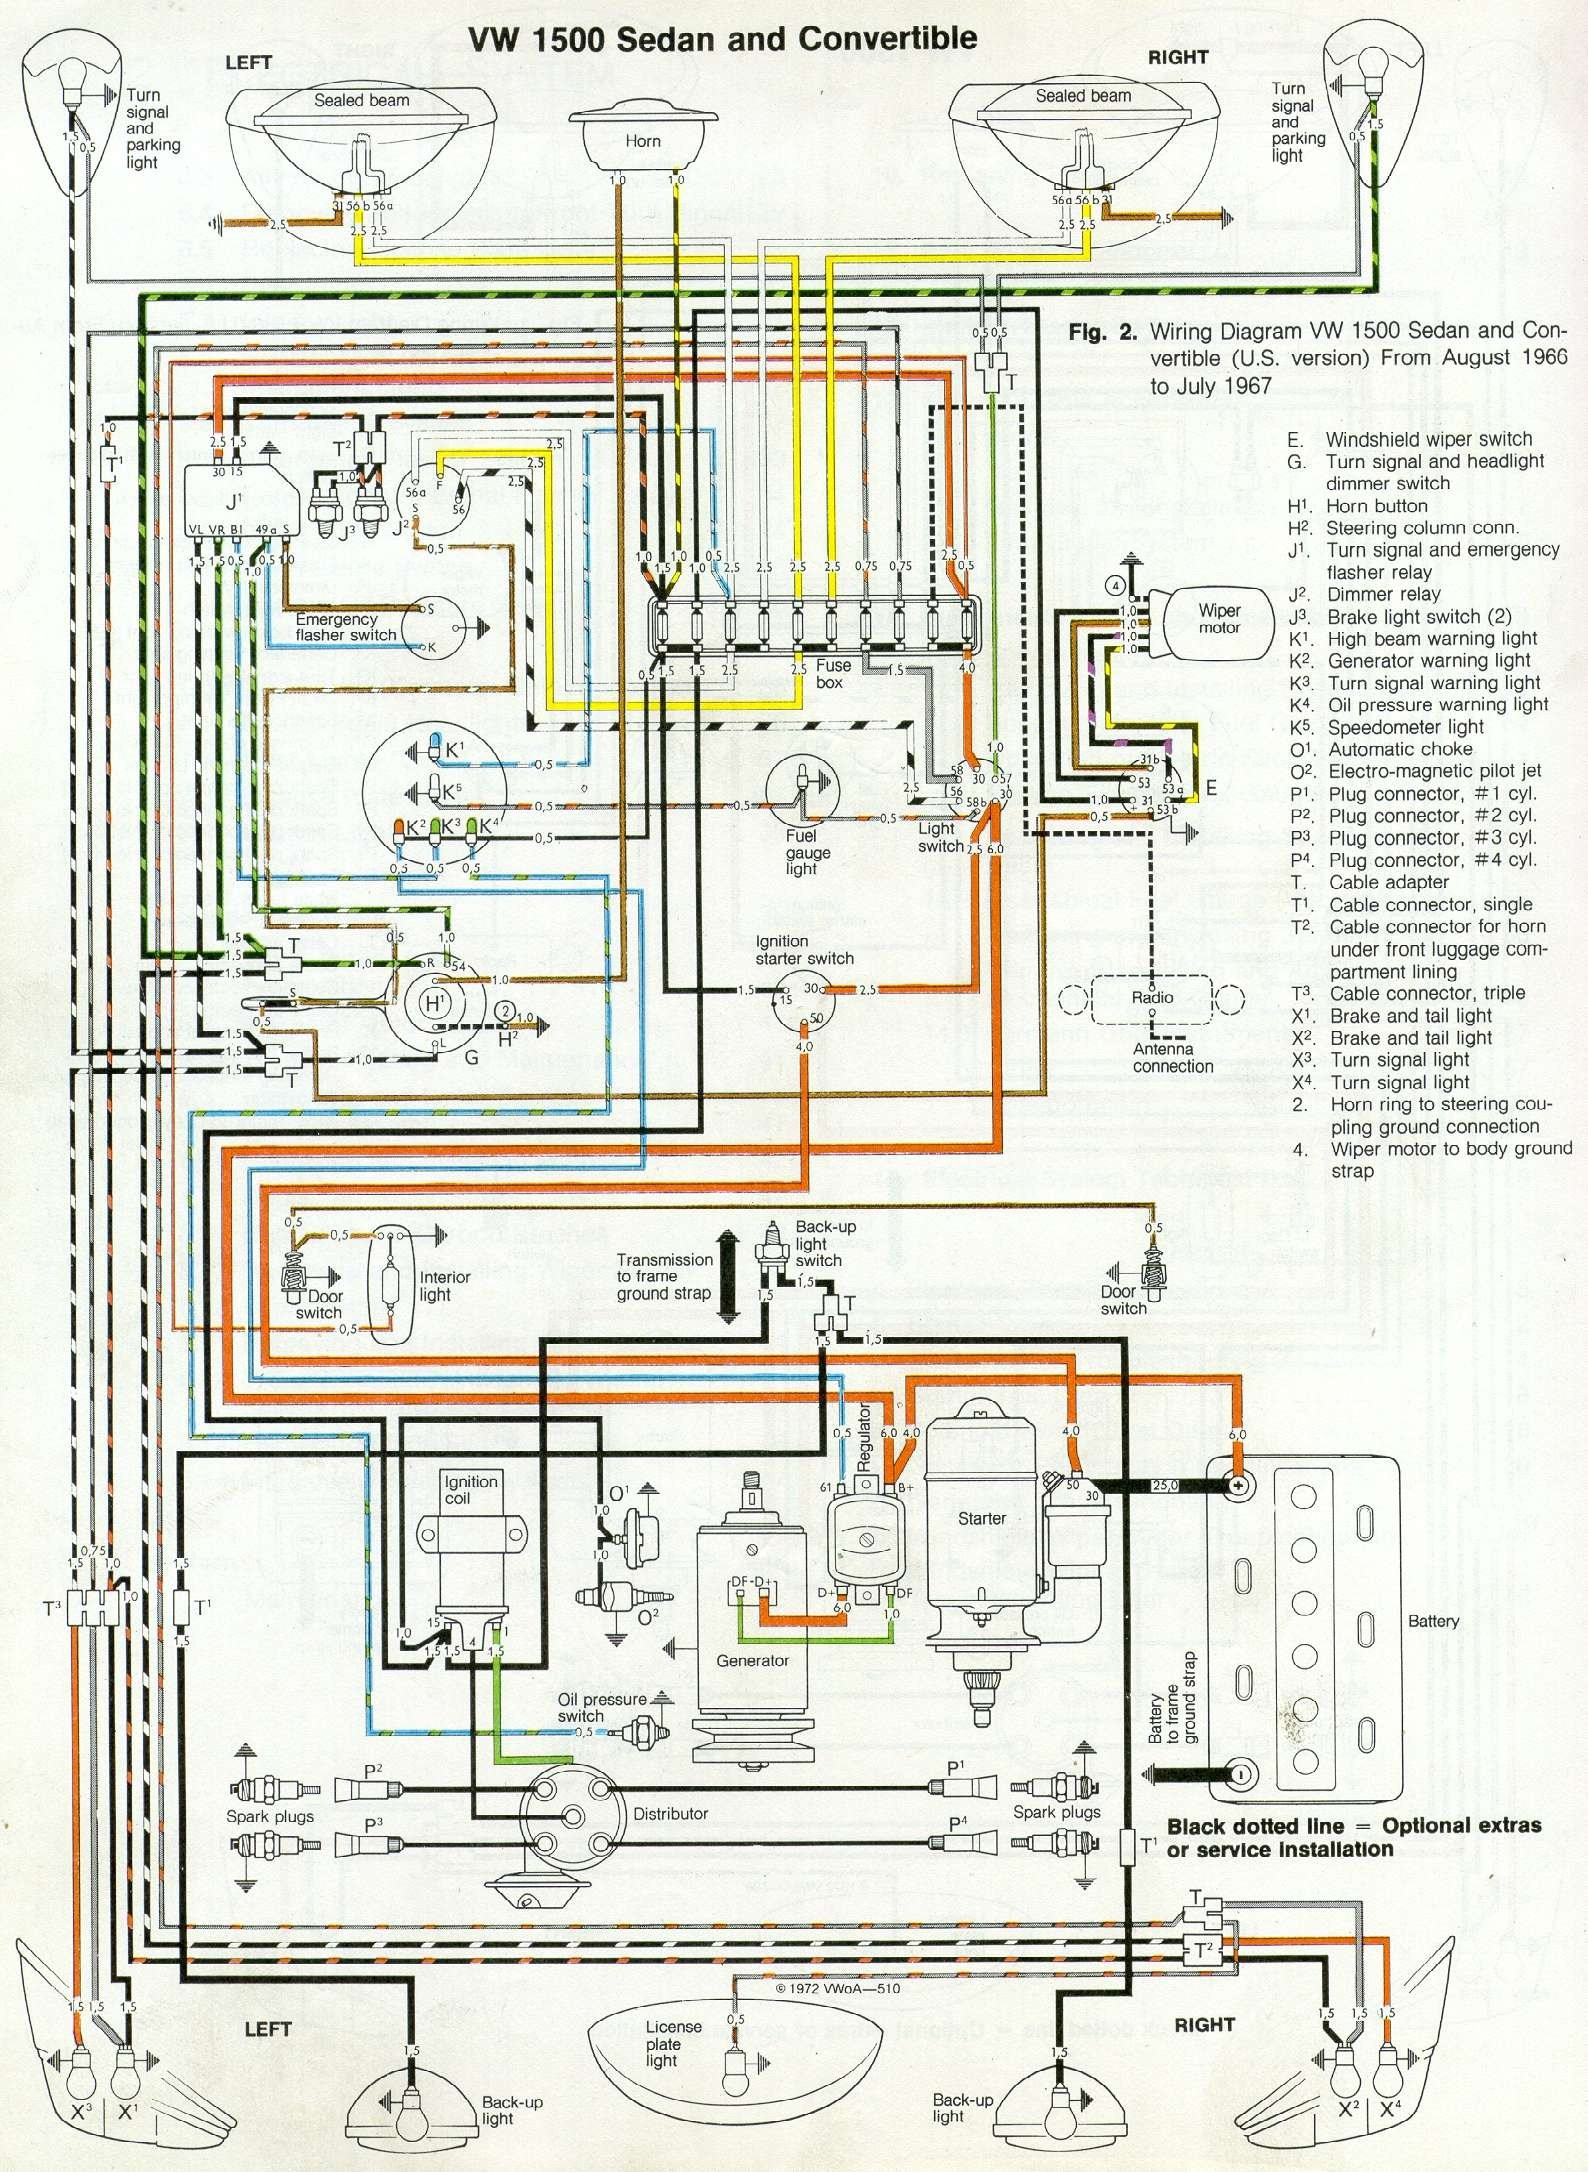 VW Beetle Wiring Digram 67 beetle wiring diagram u s version 1967 vw beetle wiring diagram for freightliner argosy at fashall.co